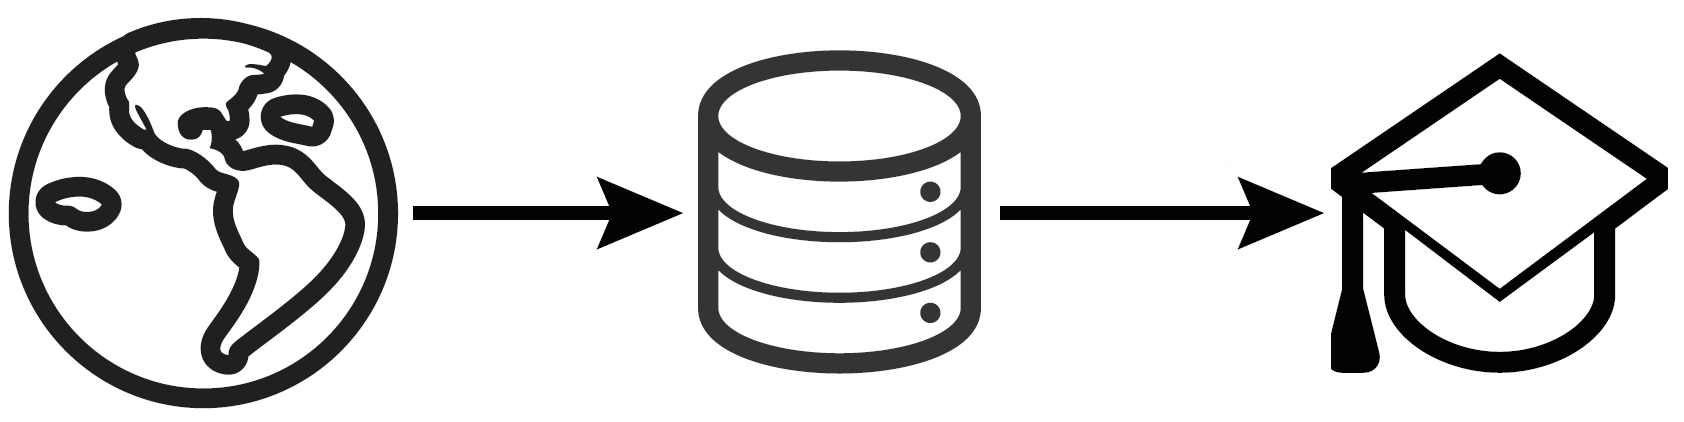 Data Analytics Workflow